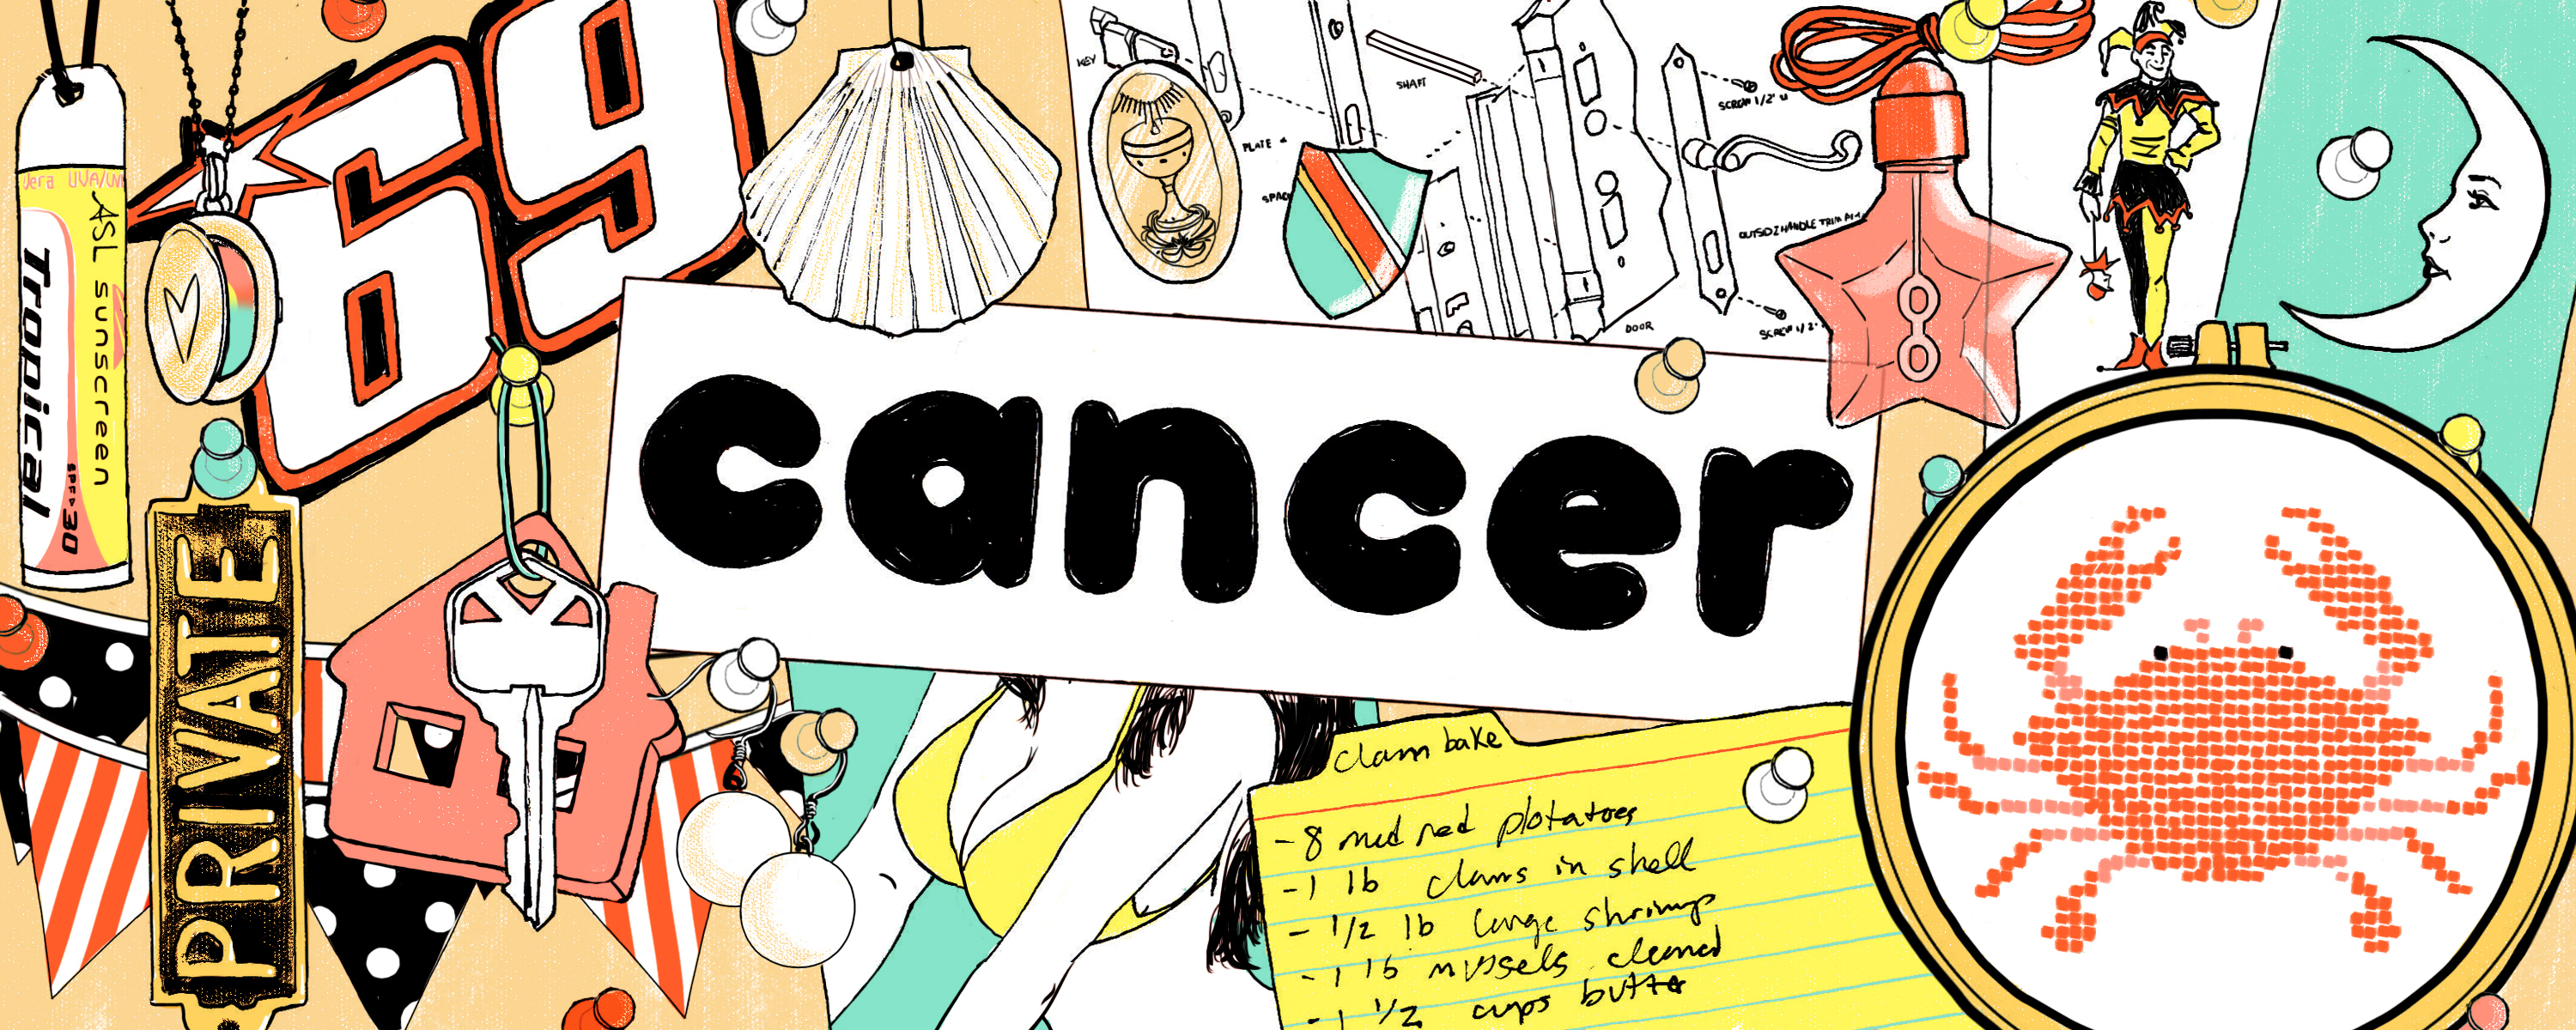 Monthly Horoscope: Cancer, August 2019 - VICE